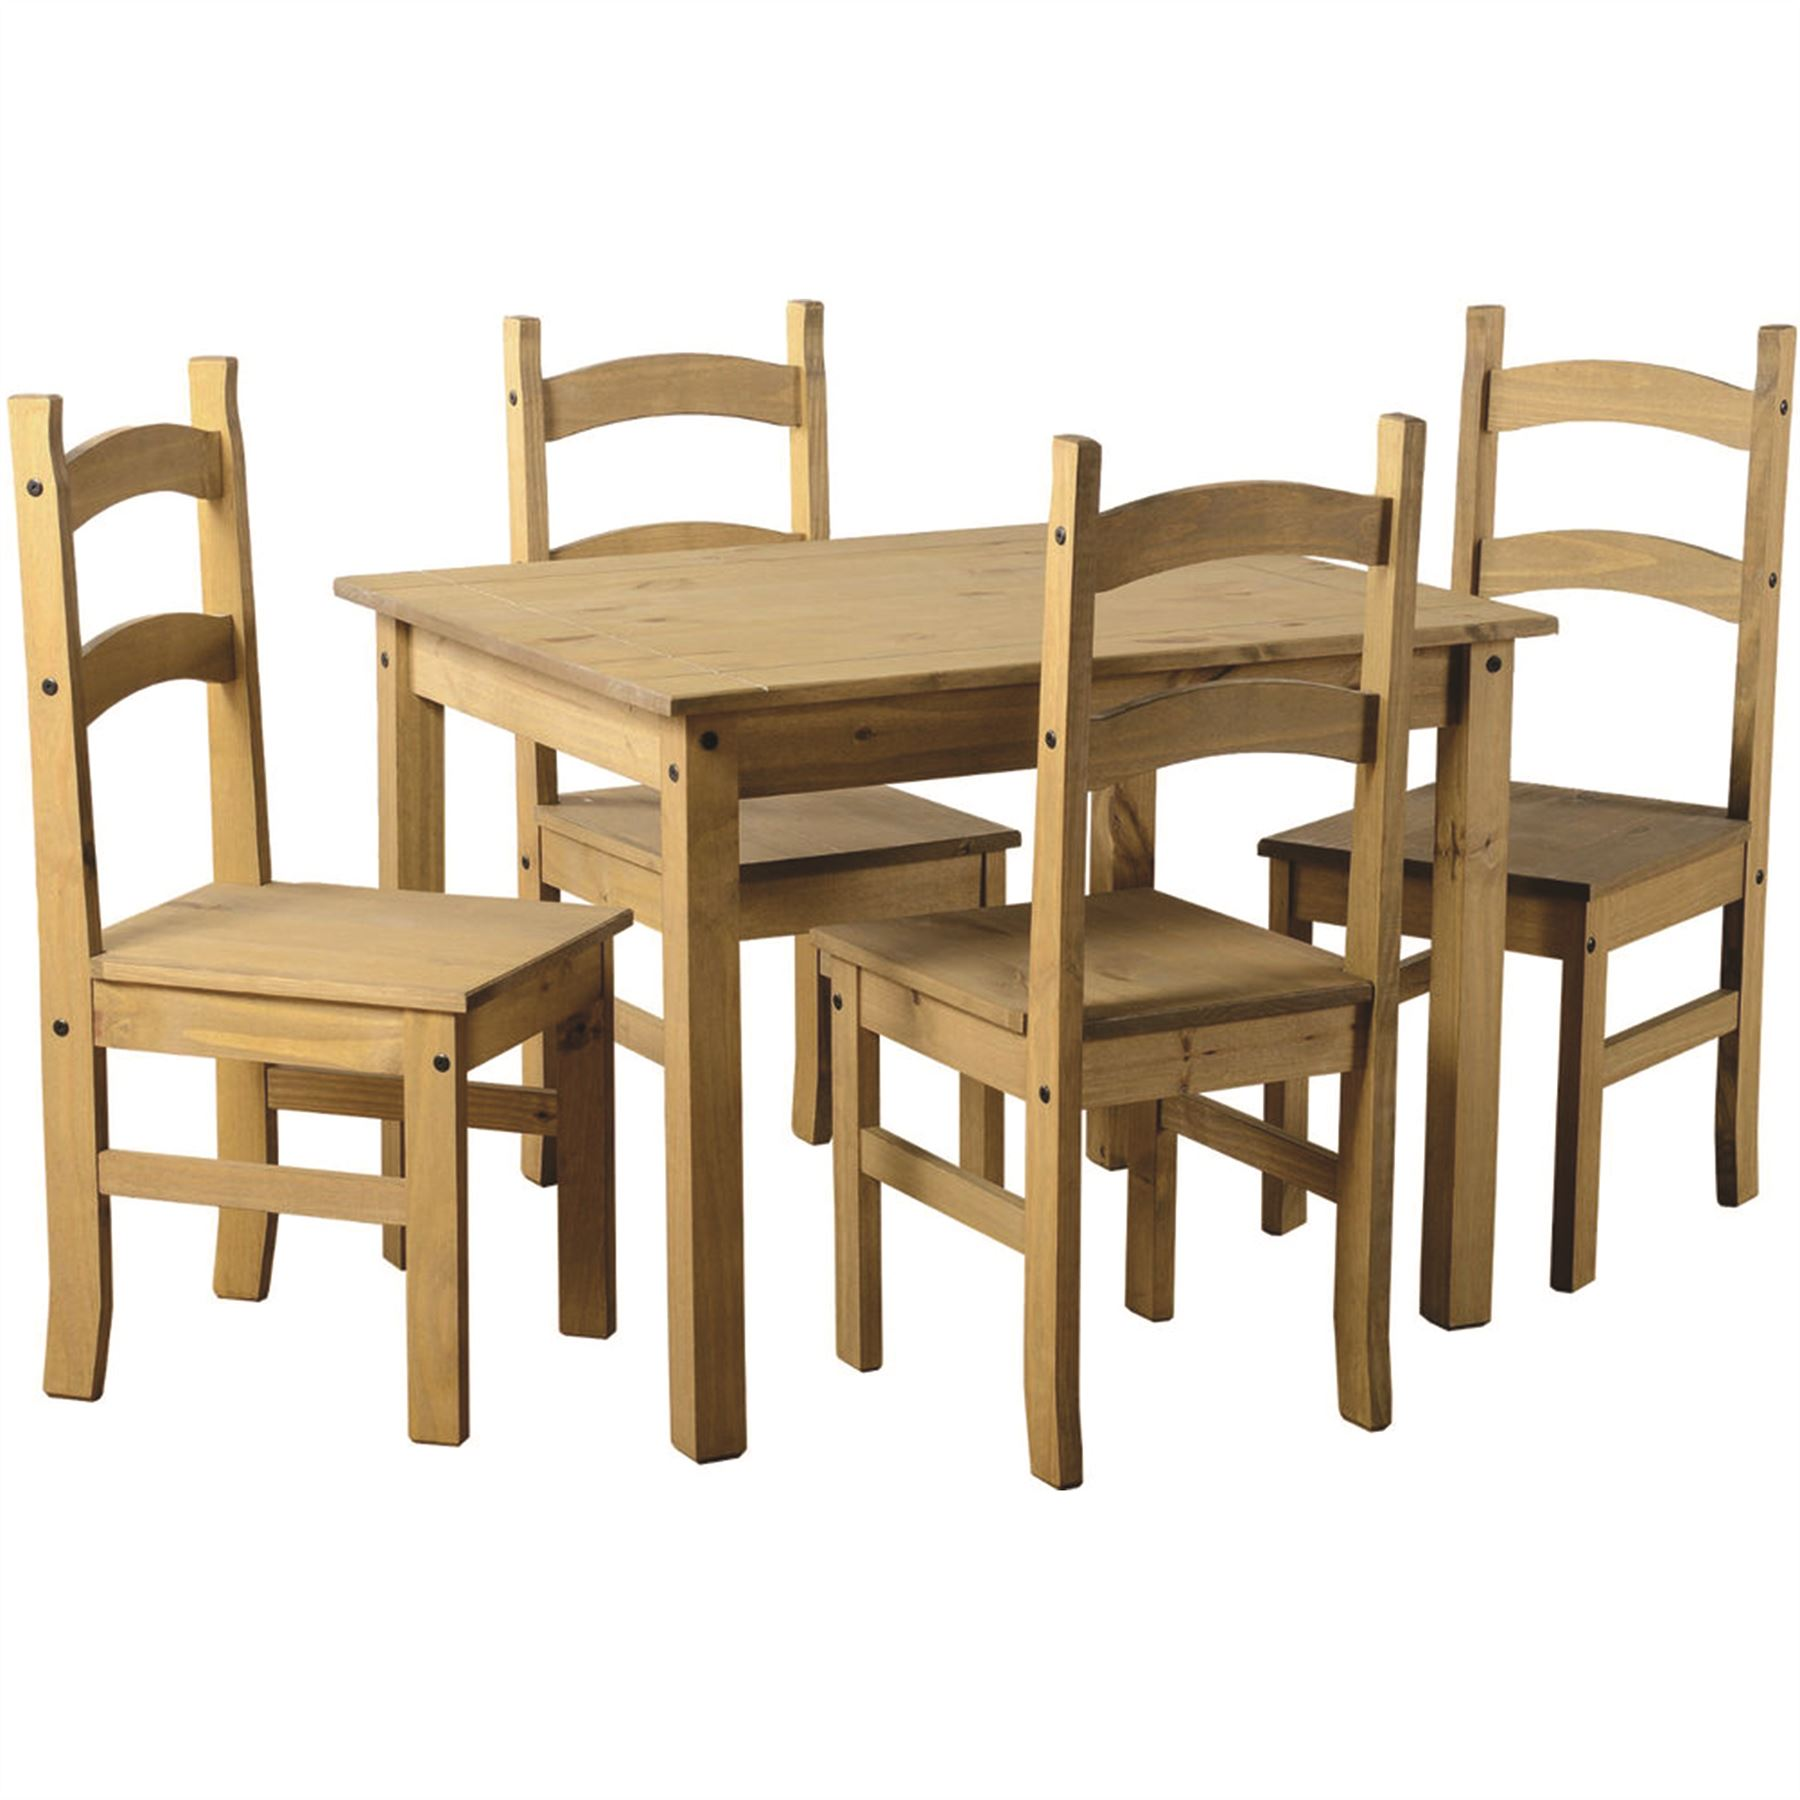 4 seater table and chairs sling replacement for patio corona dining set solid waxed pine